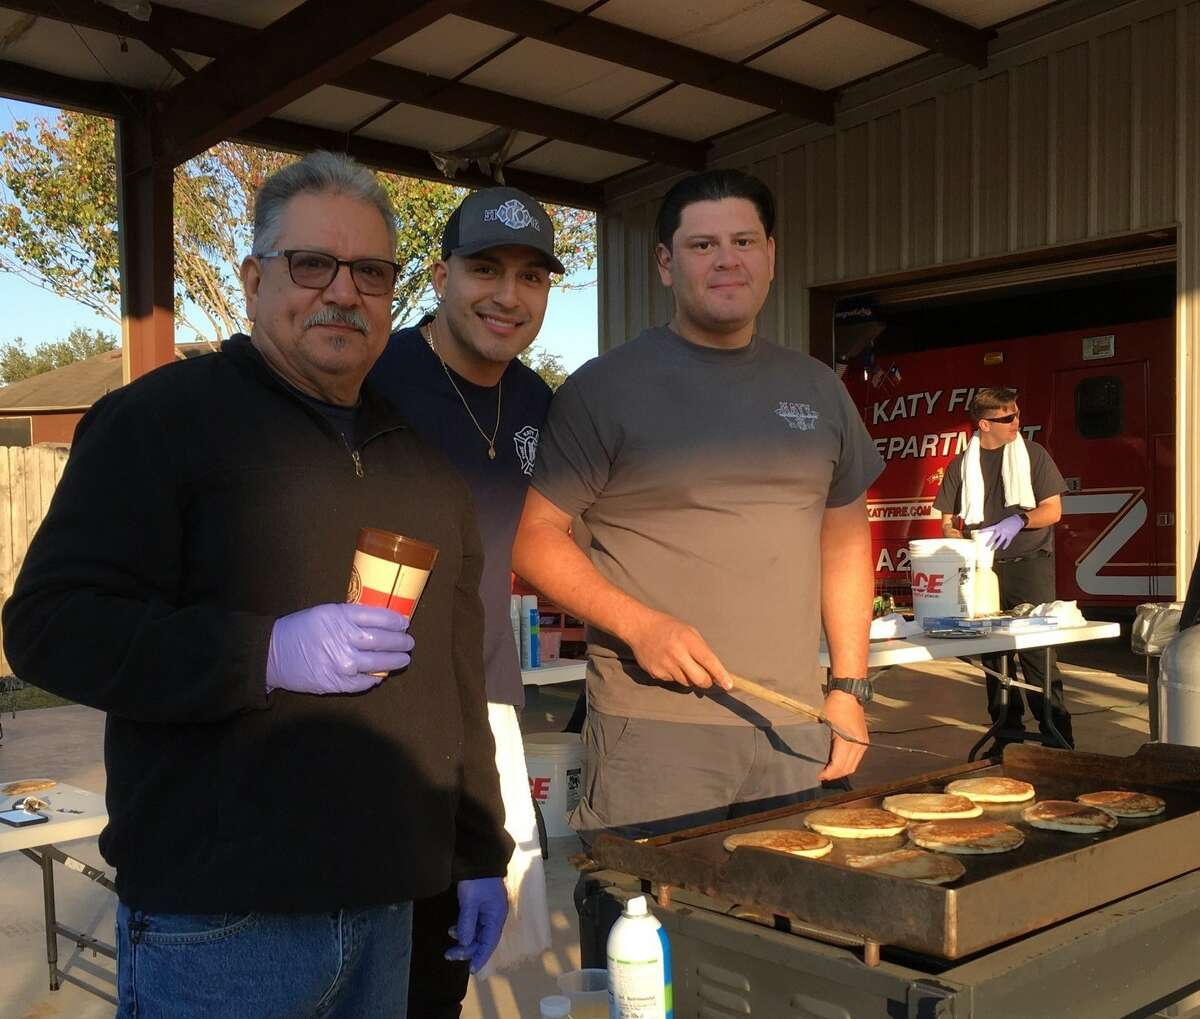 Katy Professional Firefighters Local 5192 opened the doors at Station 1 early Saturday, Dec. 7, for its second annual Pancakes with Santa. From left are Victor Vaesa, a part-time firefighter with the Willowfork Fire Department; Christopher Gonzales, a Katy firefighter/EMT, and Omar Cepeda, Katy firefighter/paramedic/pancake maker.